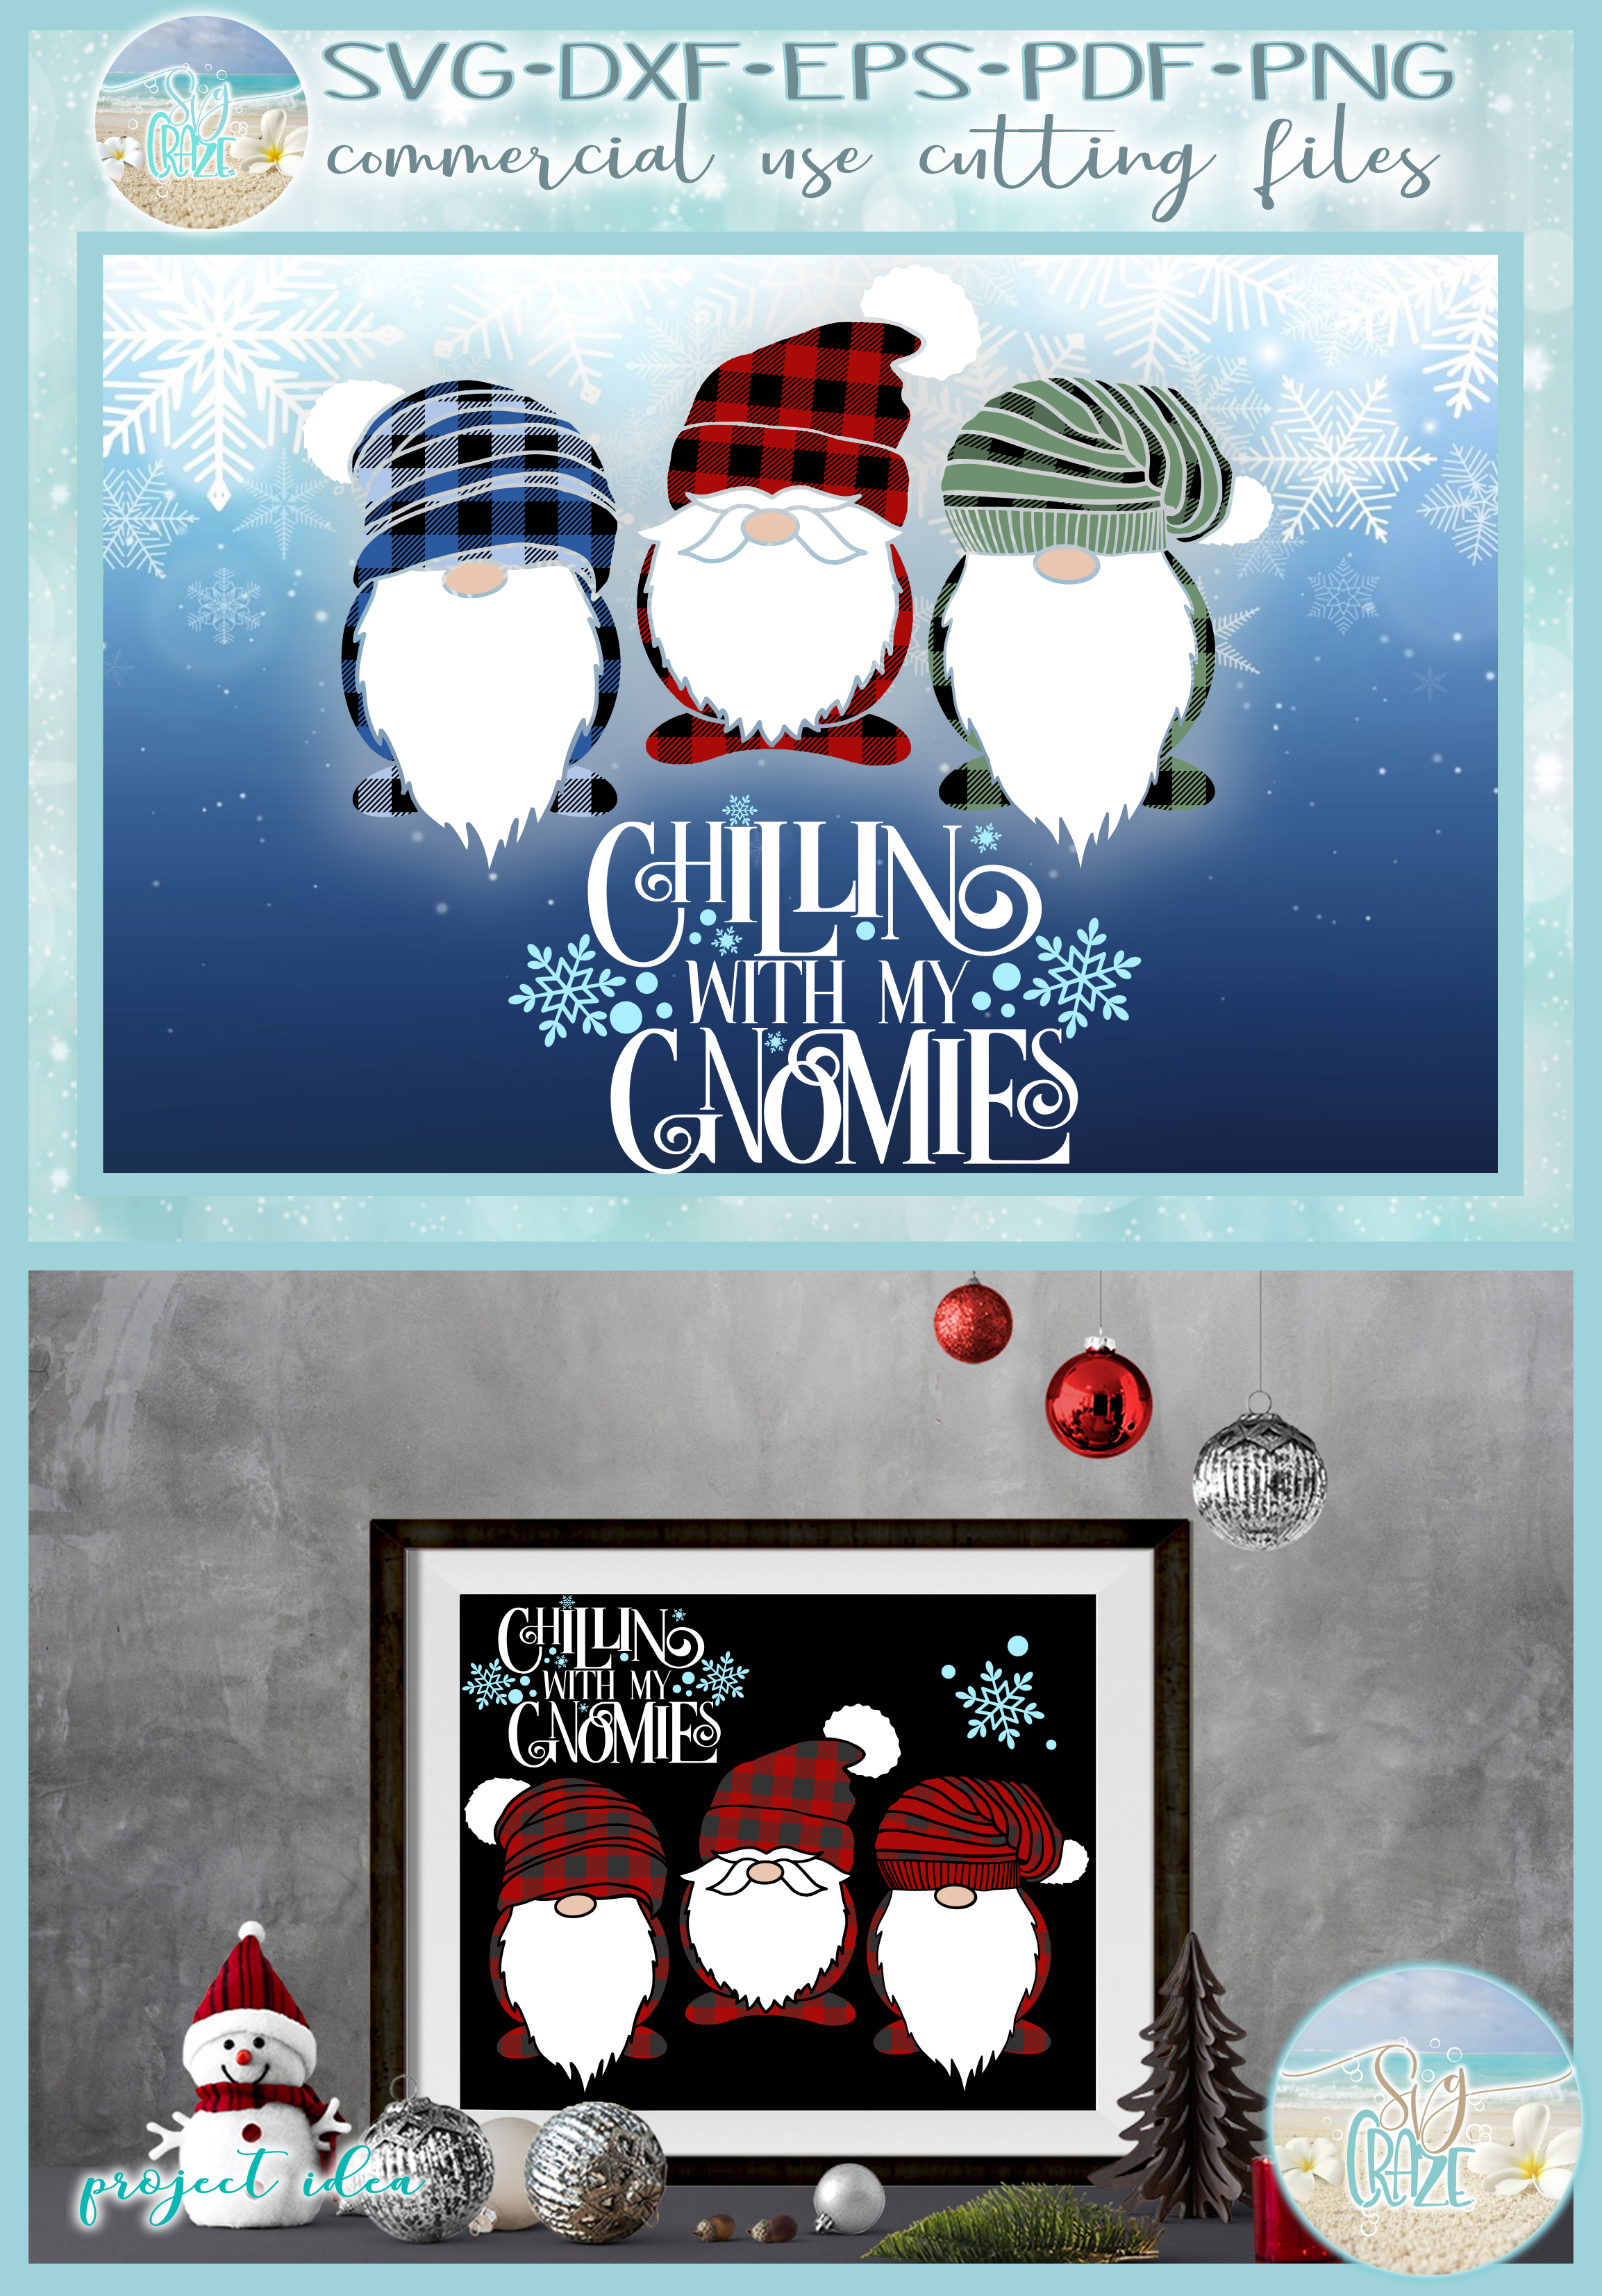 Chillin With My Gnomies Quote with Gnomes SVG example image 4